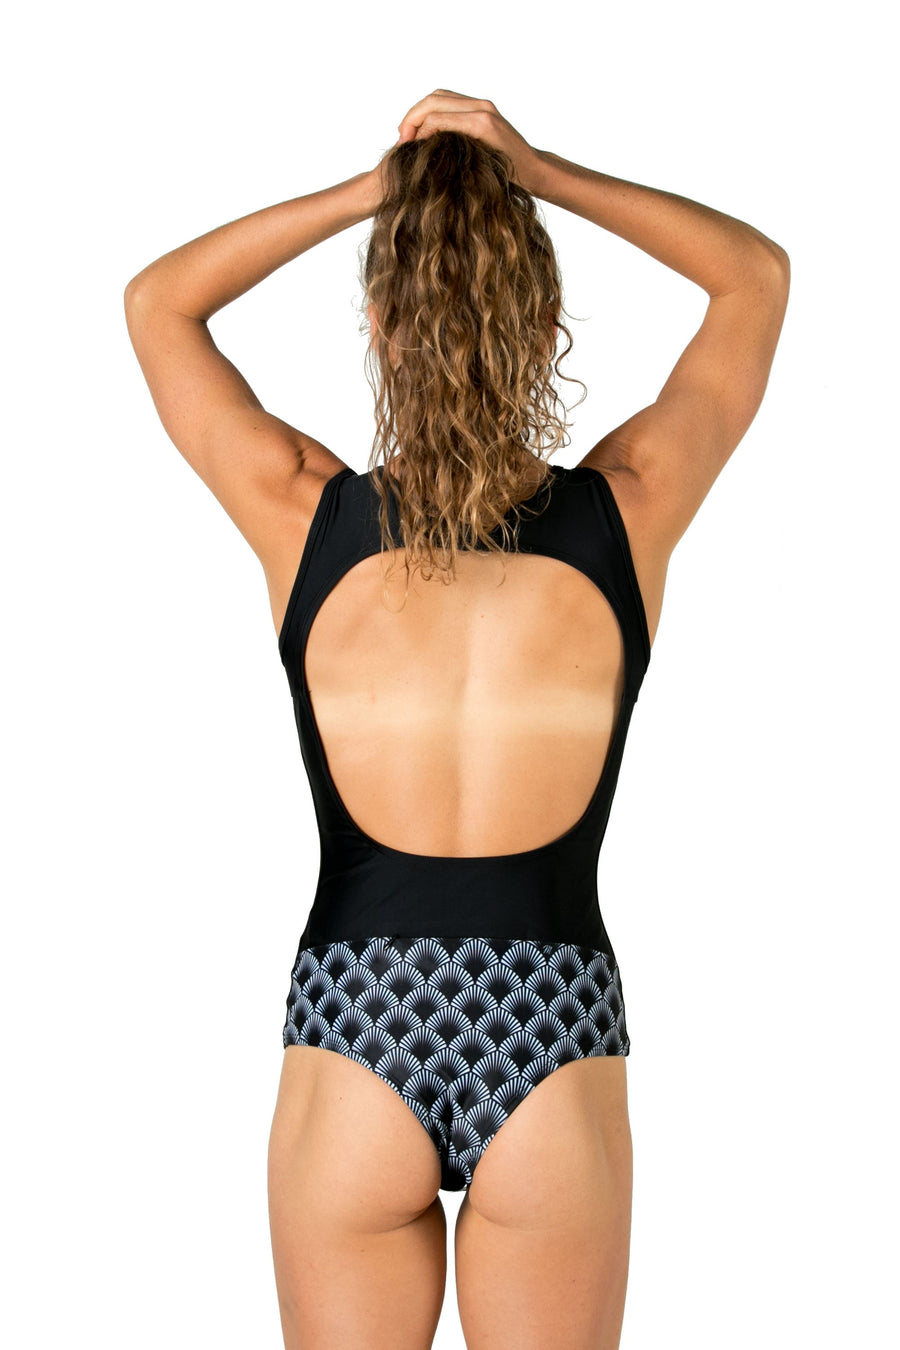 The Wild Love One Piece Surf Suit (Black Shells / Solid Black) Swim and Surf One Piece Suits Mona